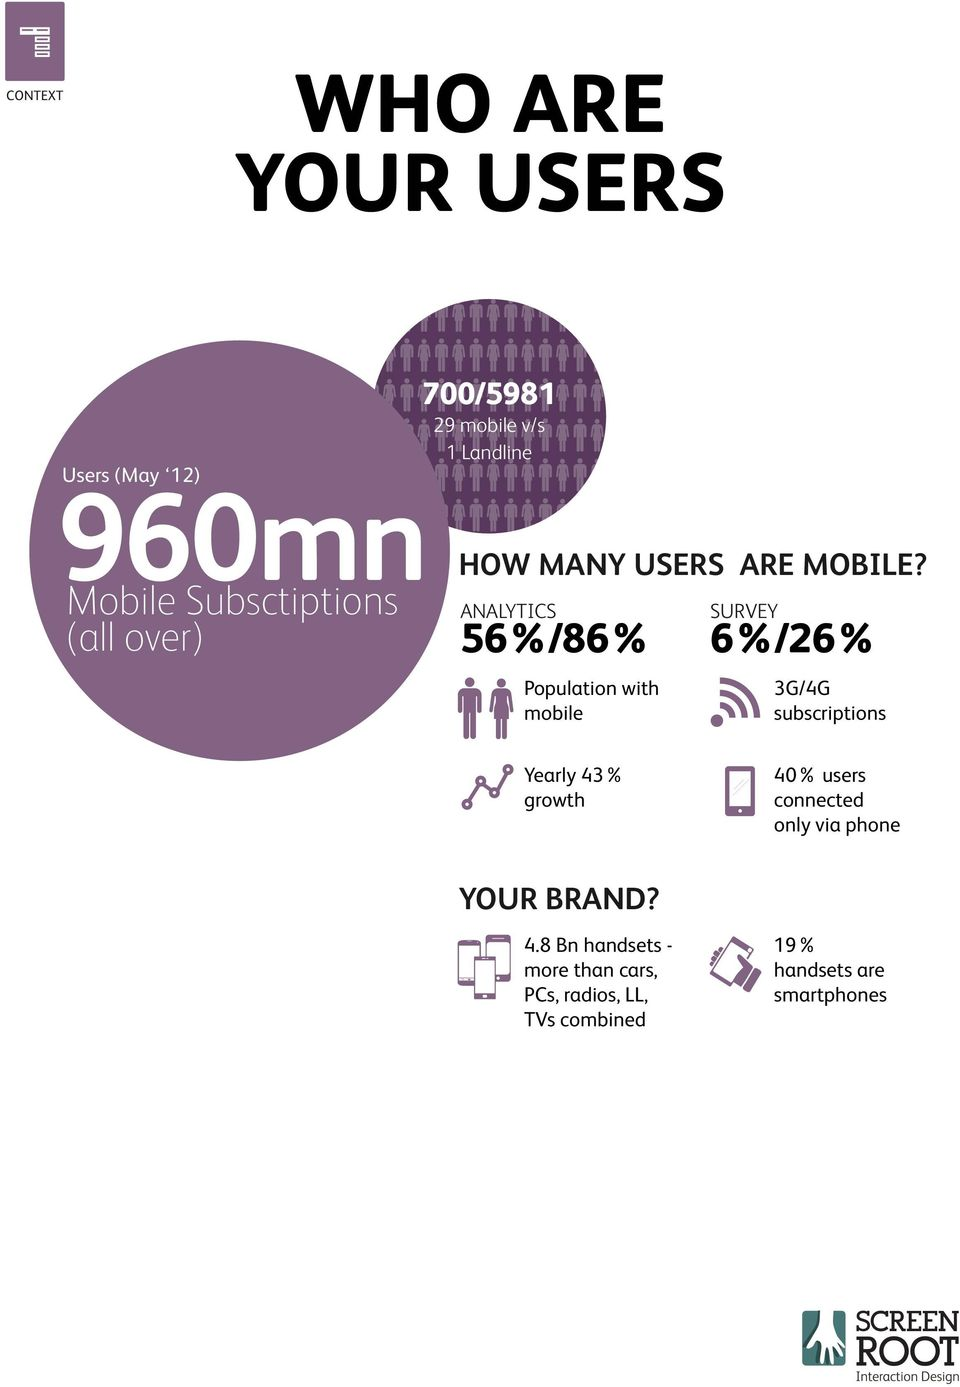 ANALYTICS 56%/86% Population with mobile SURVEY 6%/26% 3G/4G subscriptions Yearly 43% growth